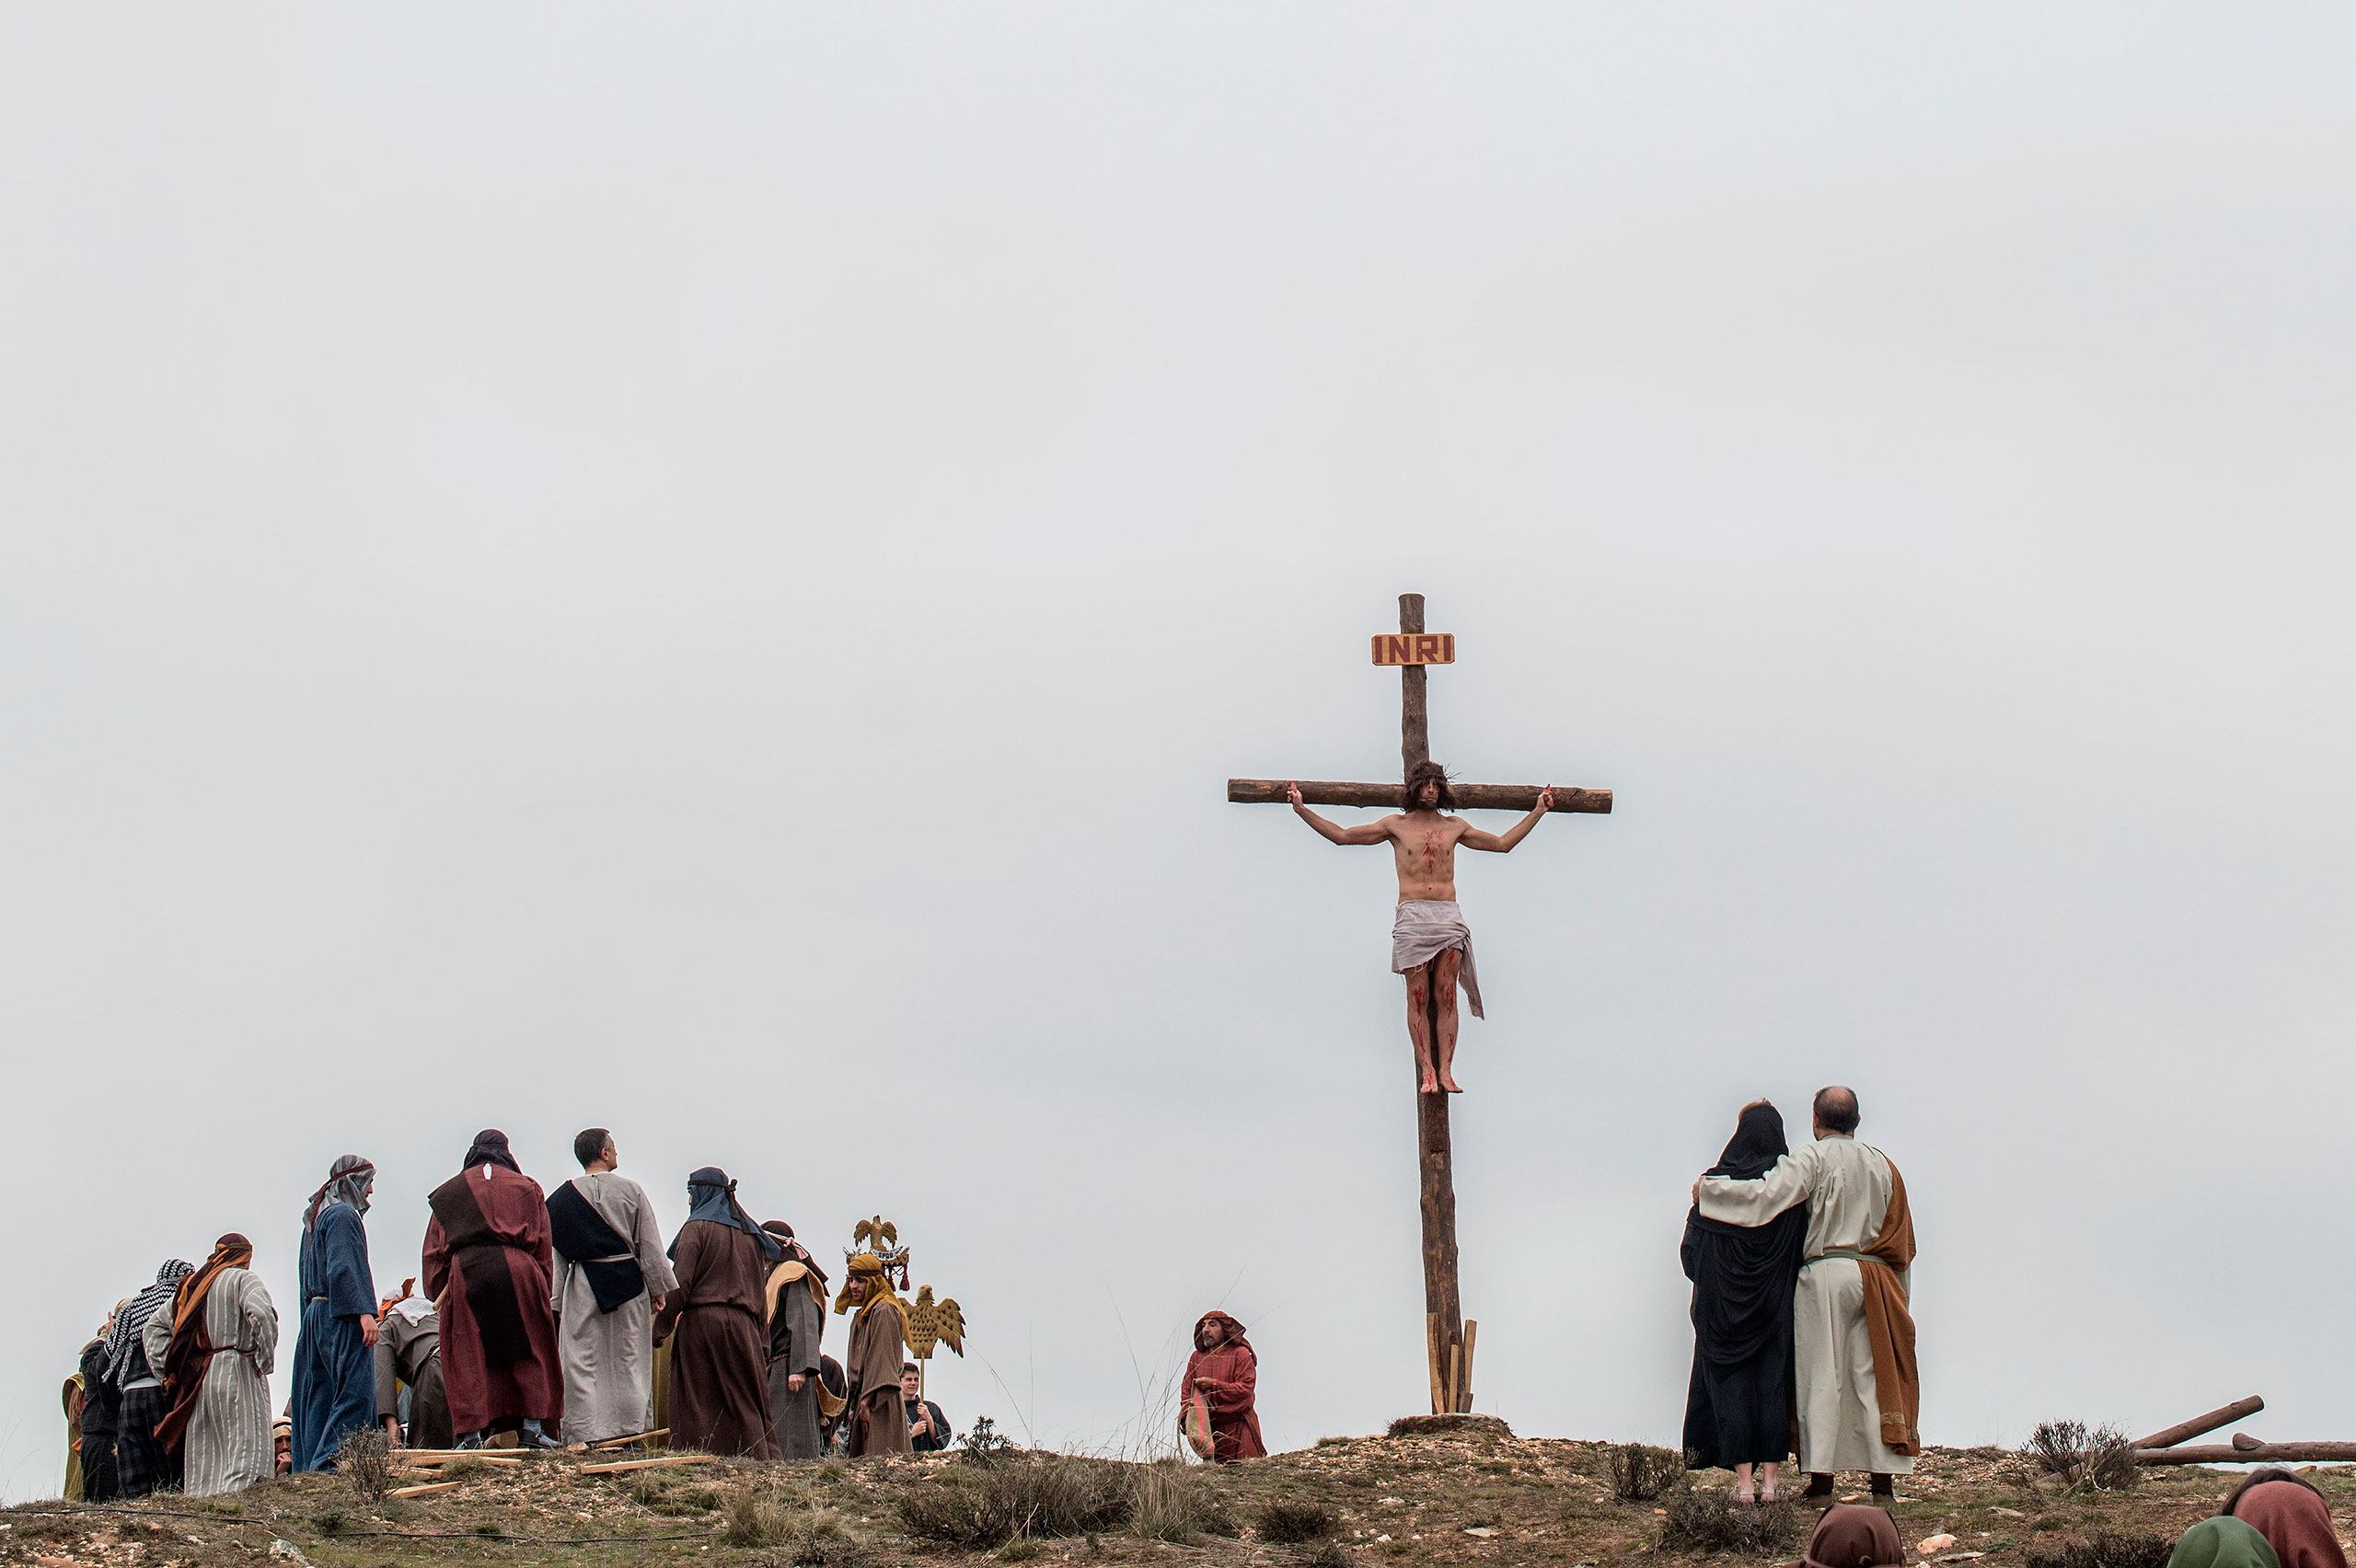 An actor portraying Jesus is crucified as residents dressed in period clothing perform during the reenactment of Christ's suffering, Hiendelaencia, Spain, March 25, 2016.